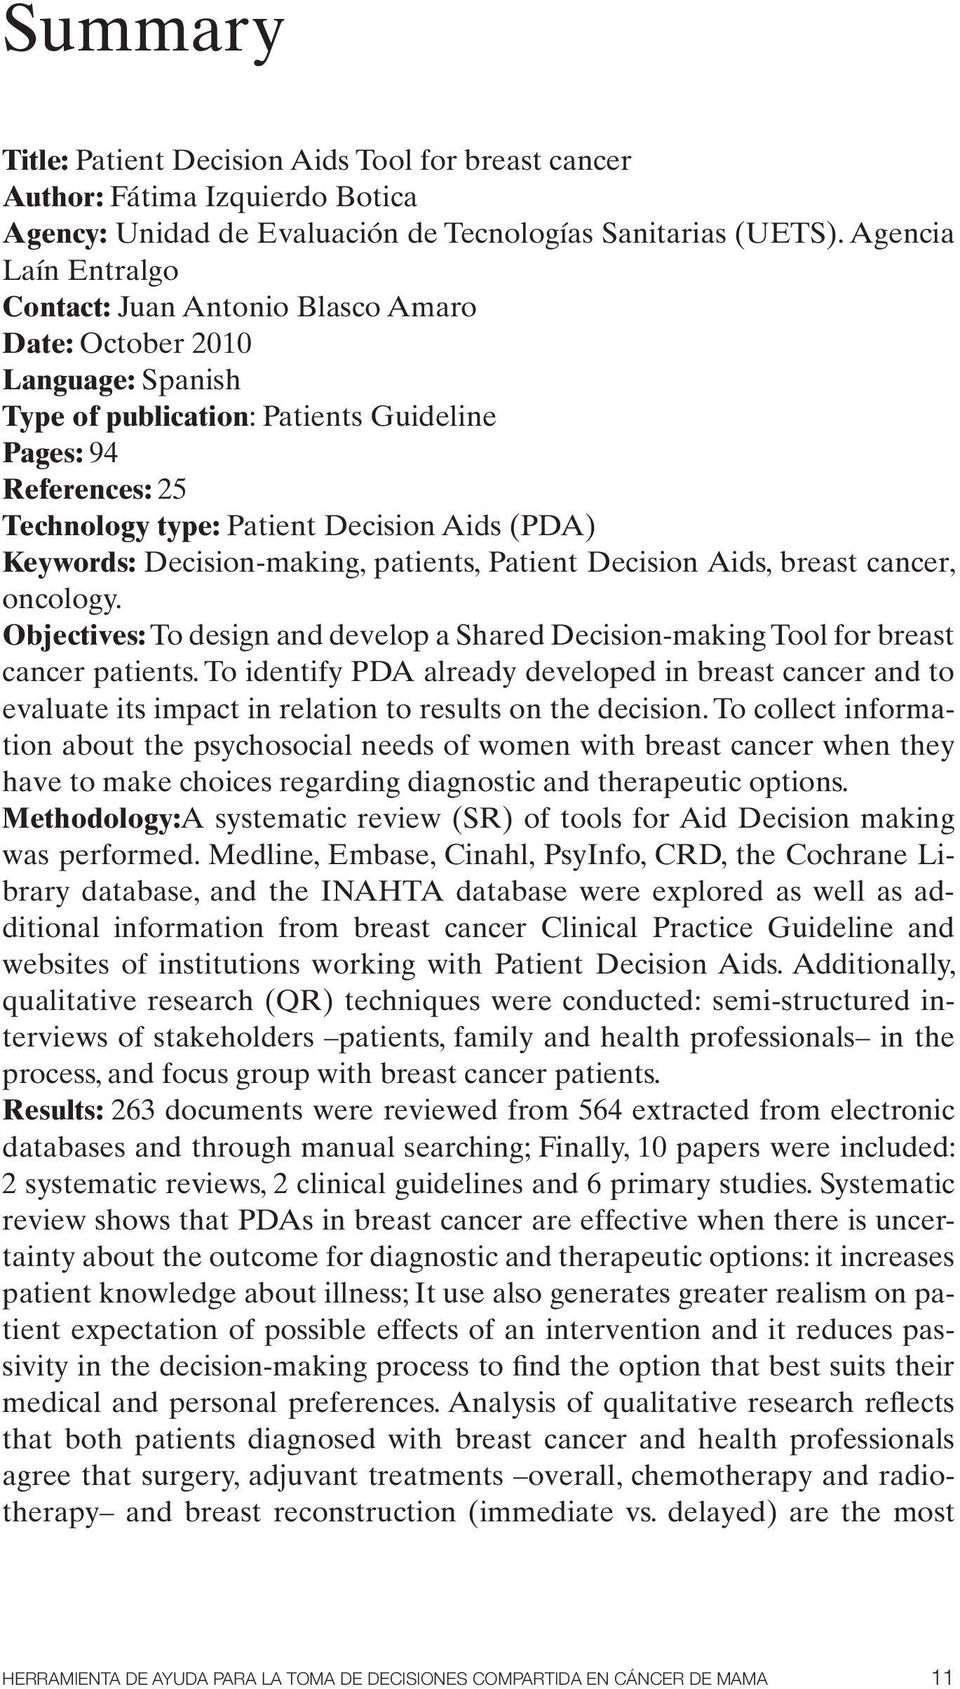 (PDA) Keywords: Decision-making, patients, Patient Decision Aids, breast cancer, oncology. Objectives: To design and develop a Shared Decision-making Tool for breast cancer patients.